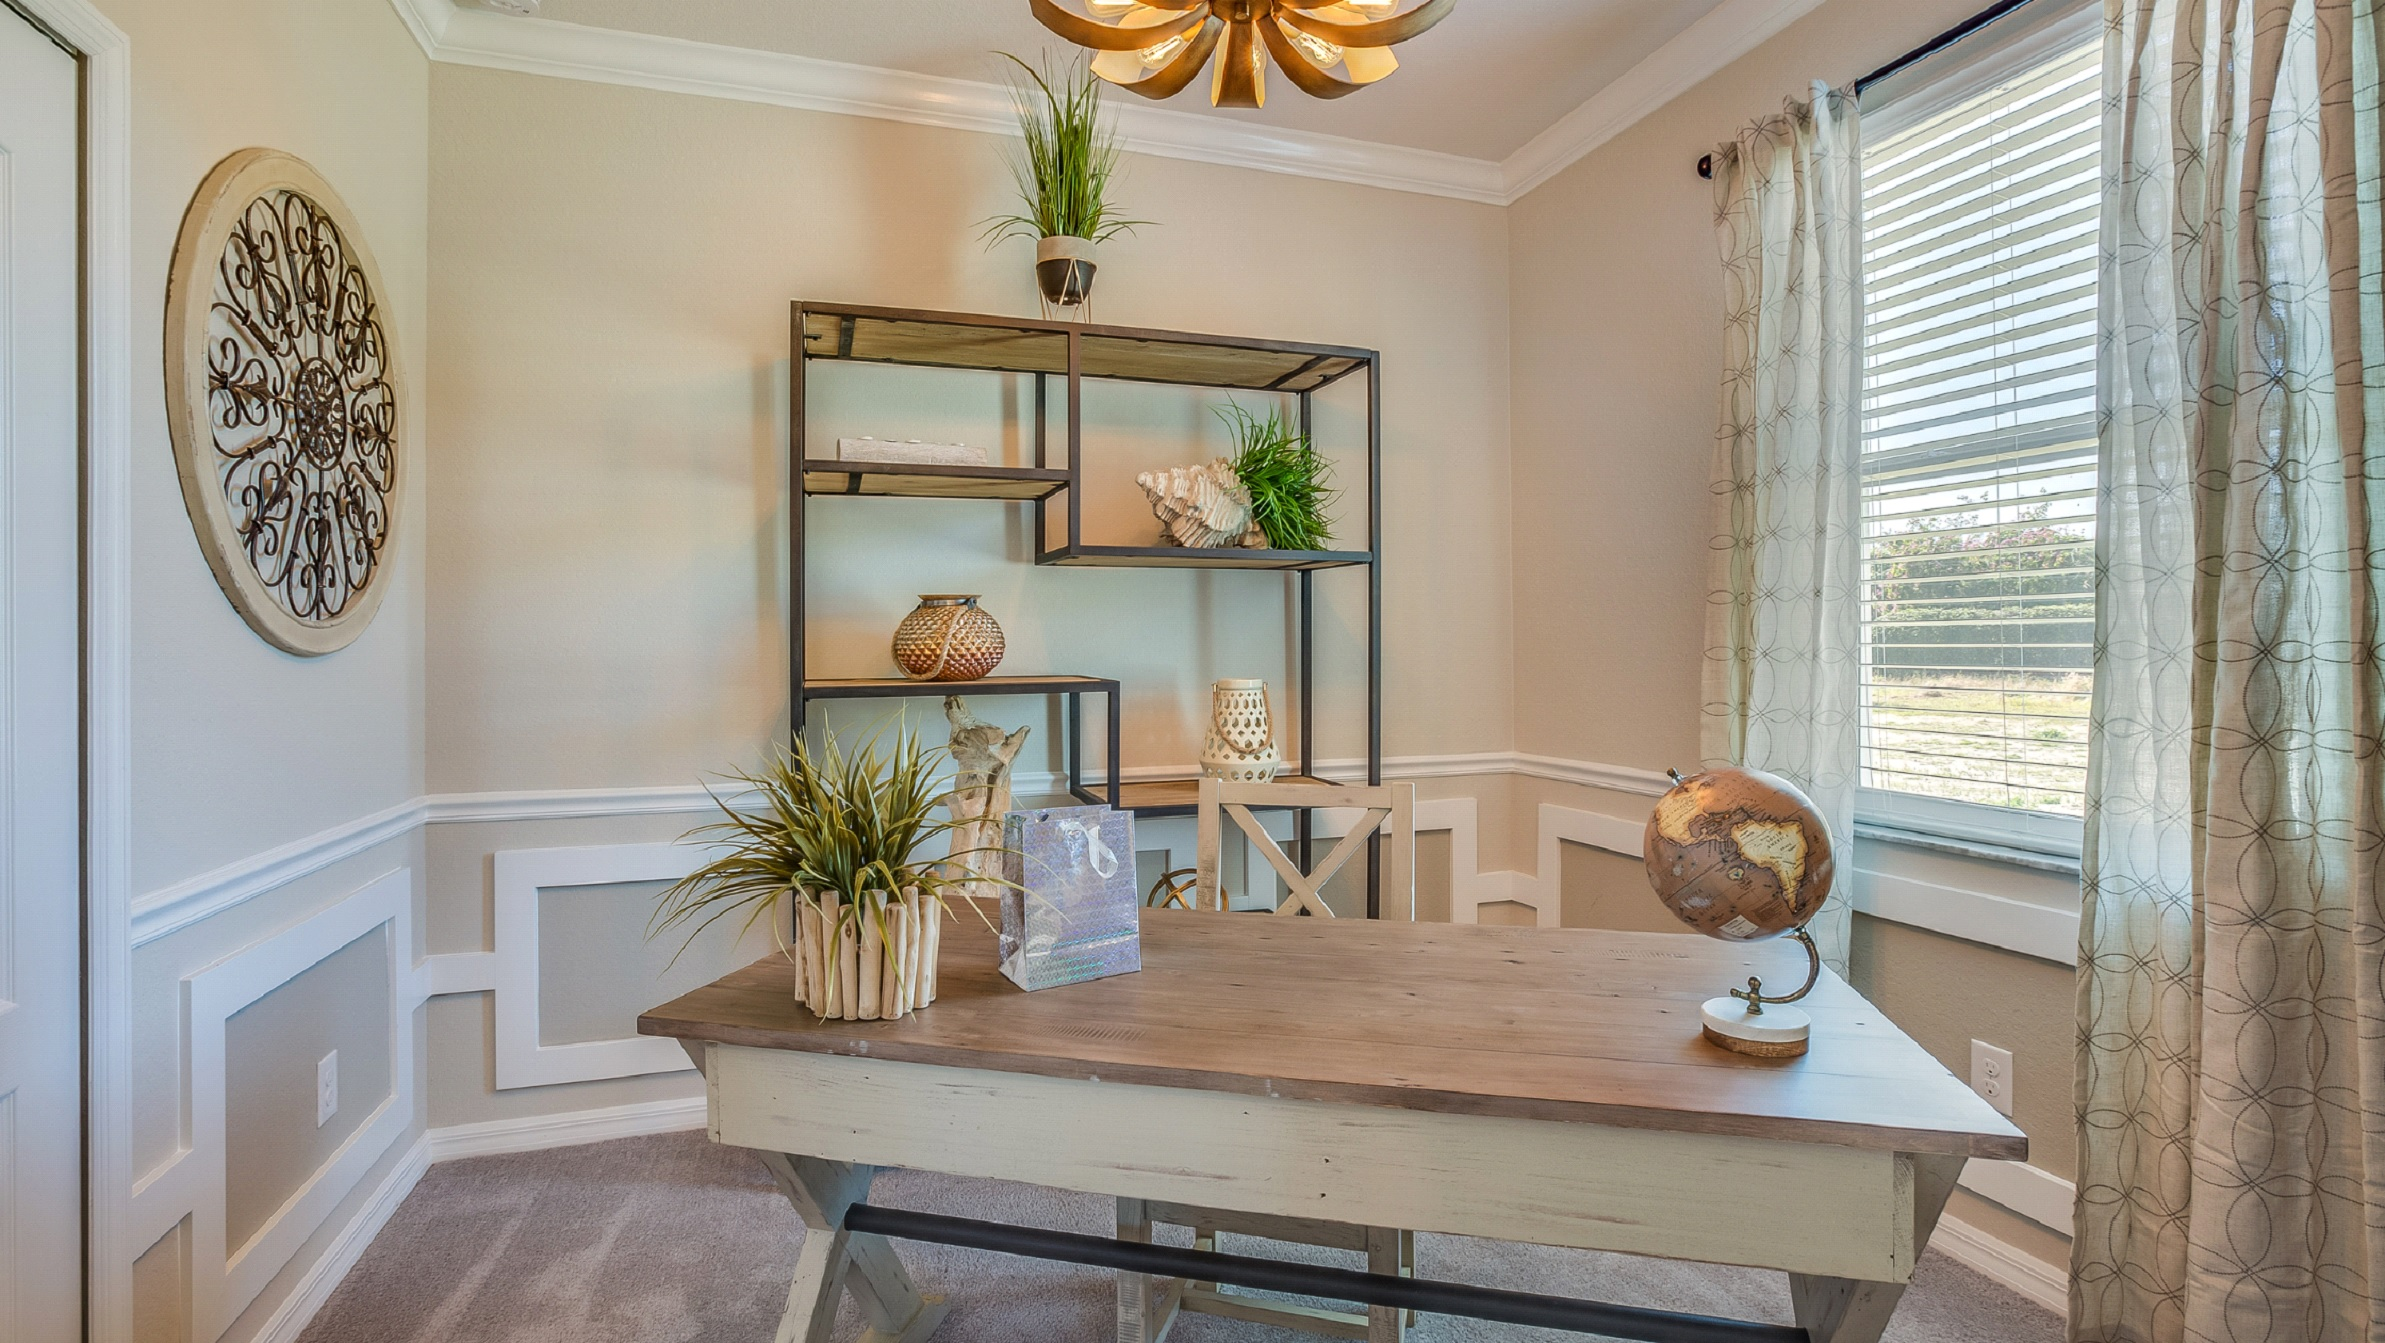 preparing to sell, home decor, home staging, Vaughan Realtor